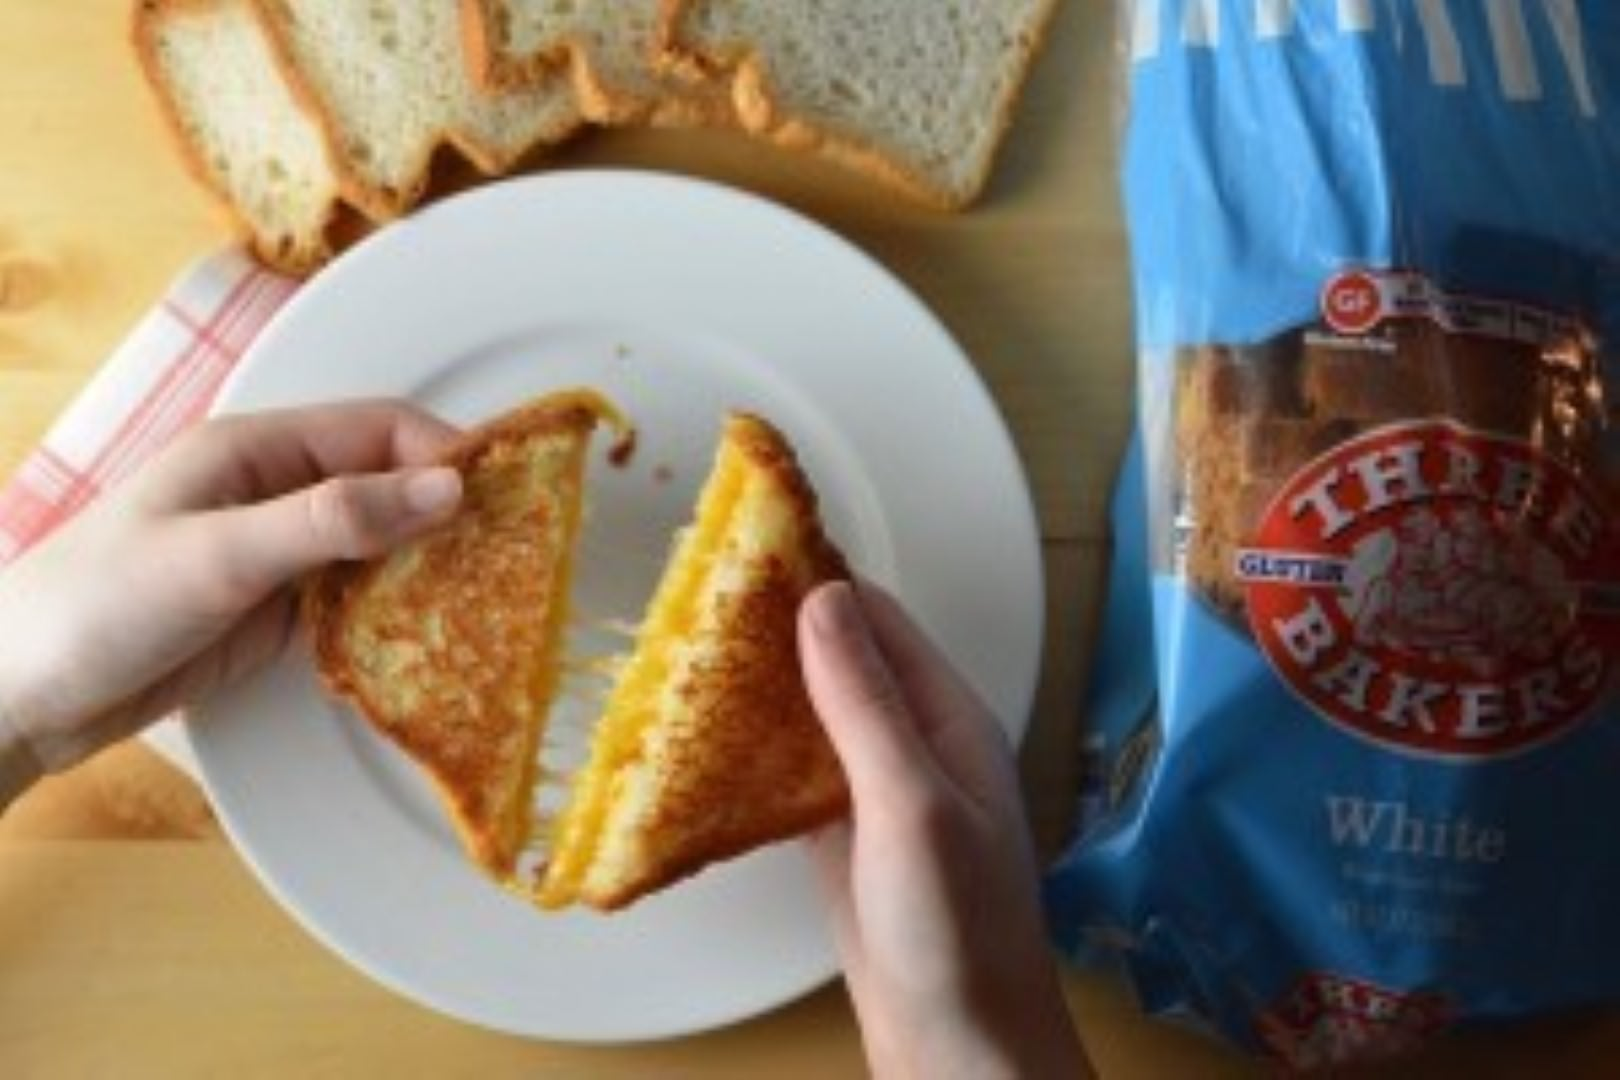 gluten-free sandwiches classic grilled cheese